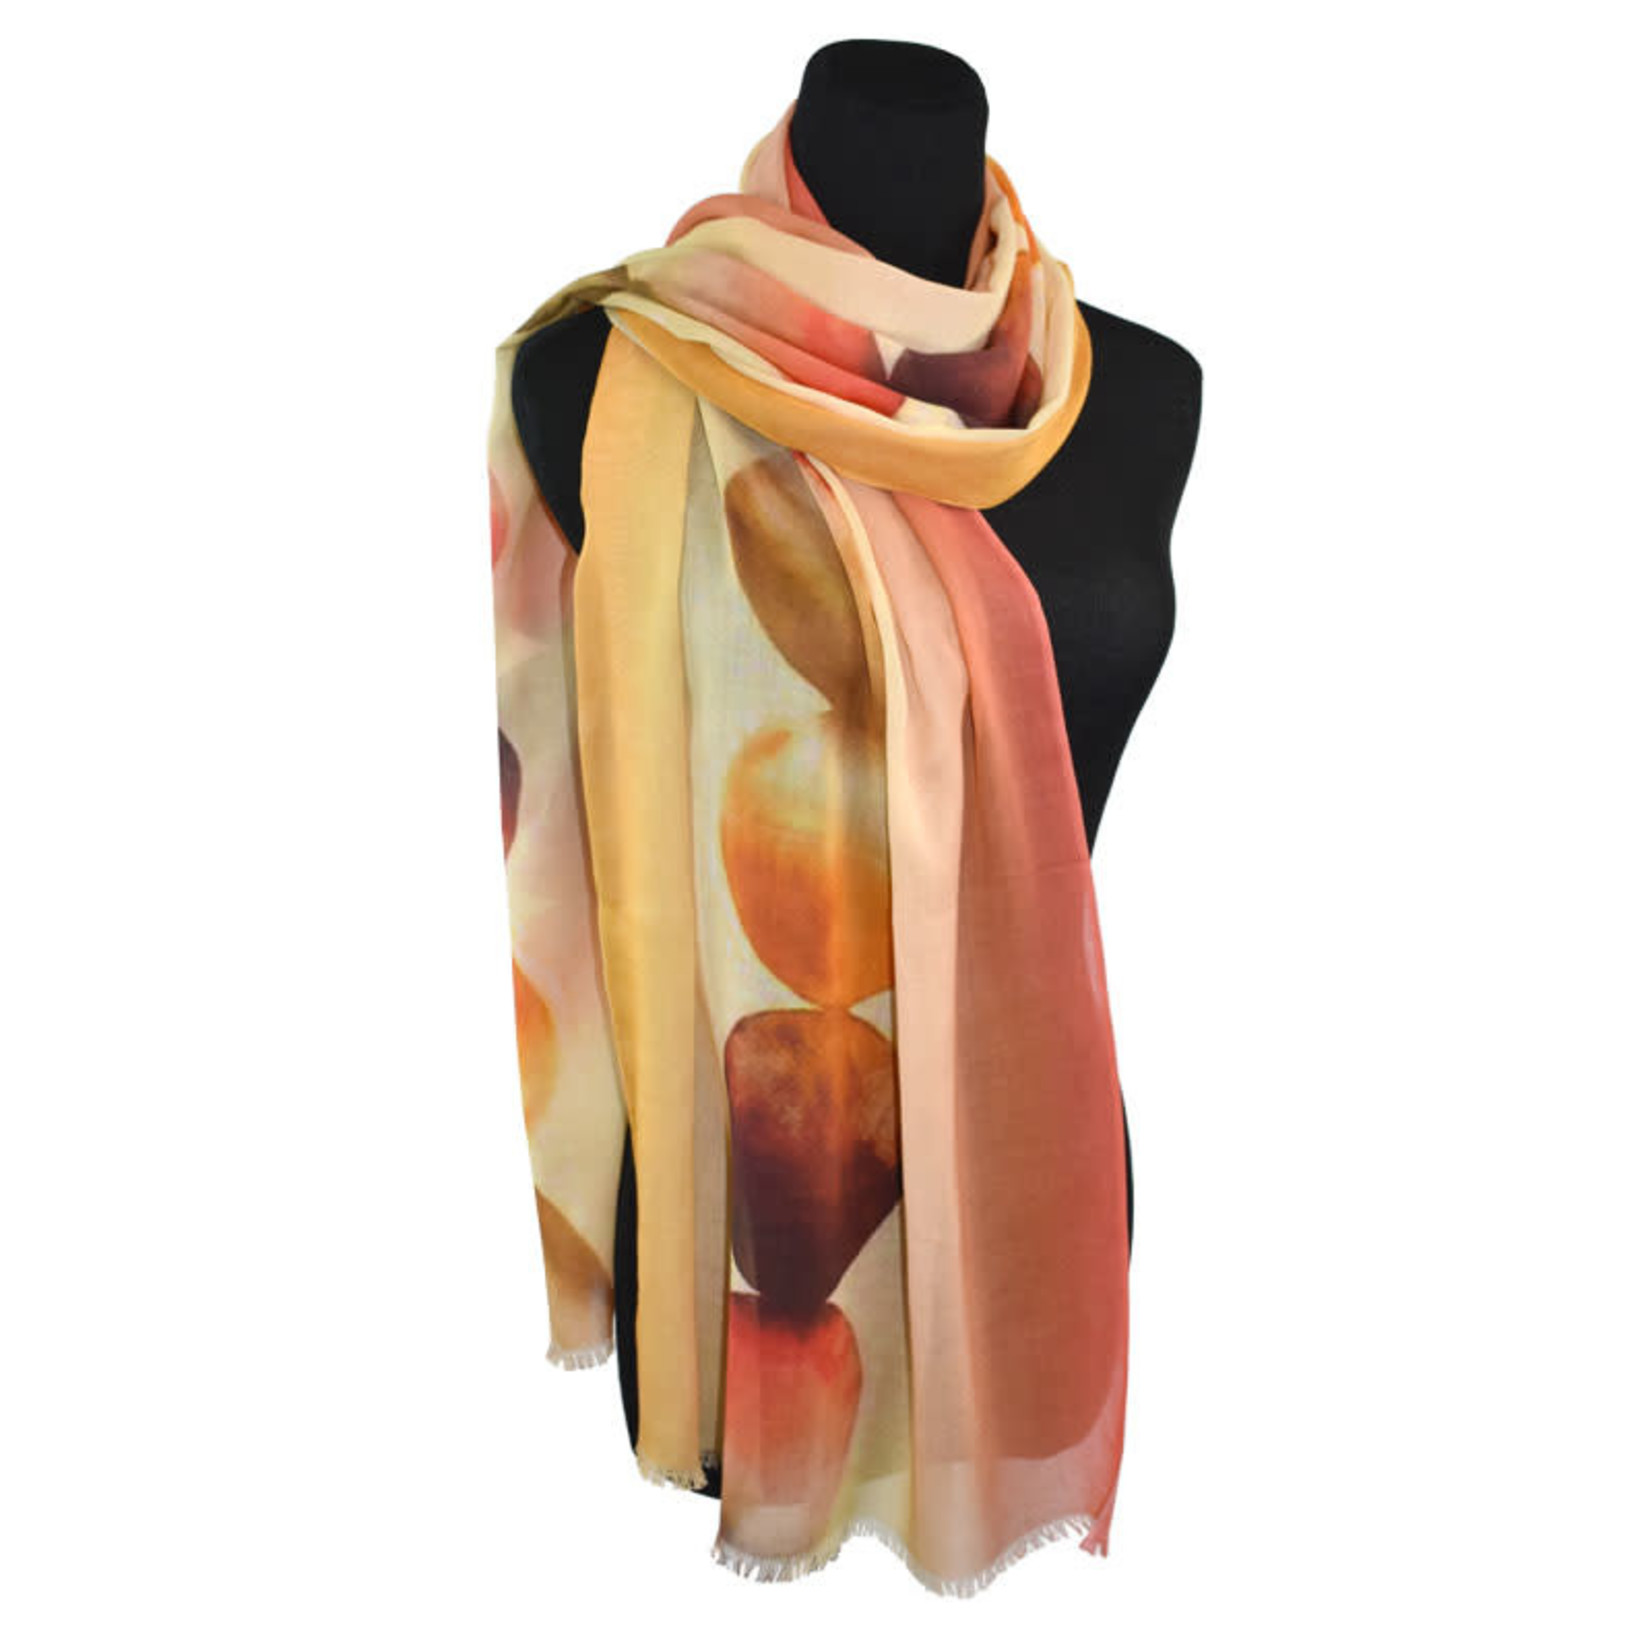 Watercolor Dots Ombre Border Orange Scarf on Lightweight Cotton